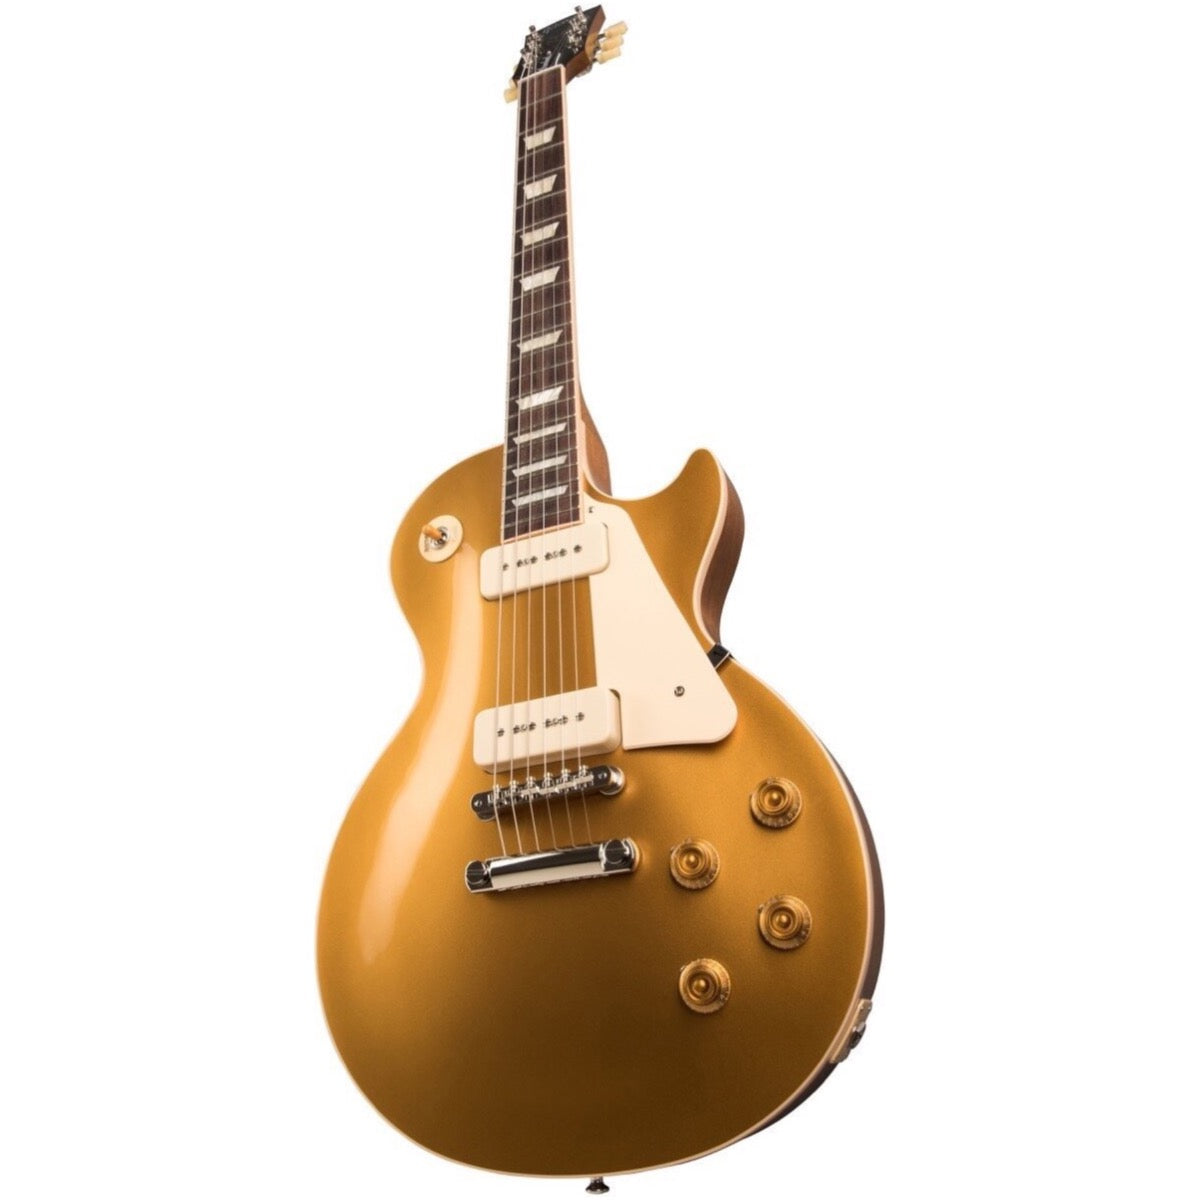 Gibson Les Paul Standard '50s P90 Gold Top Electric Guitar (with Case)